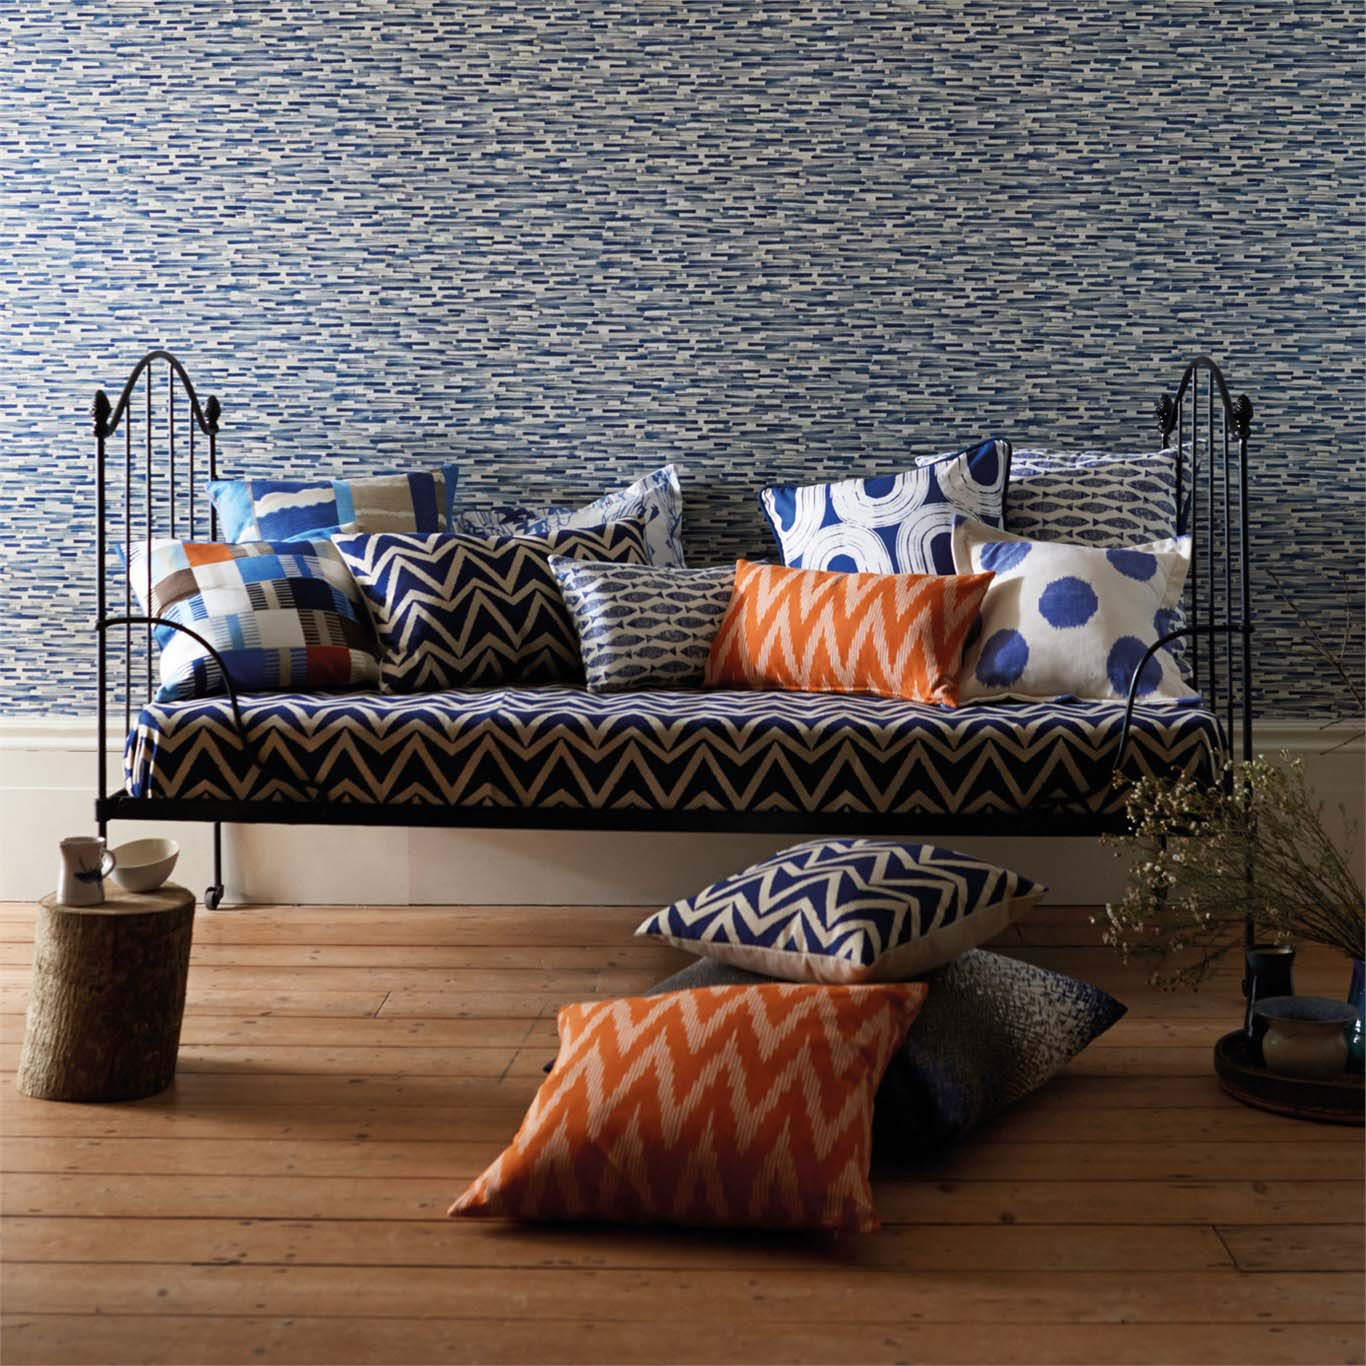 Lounge with cushions and wallpaper